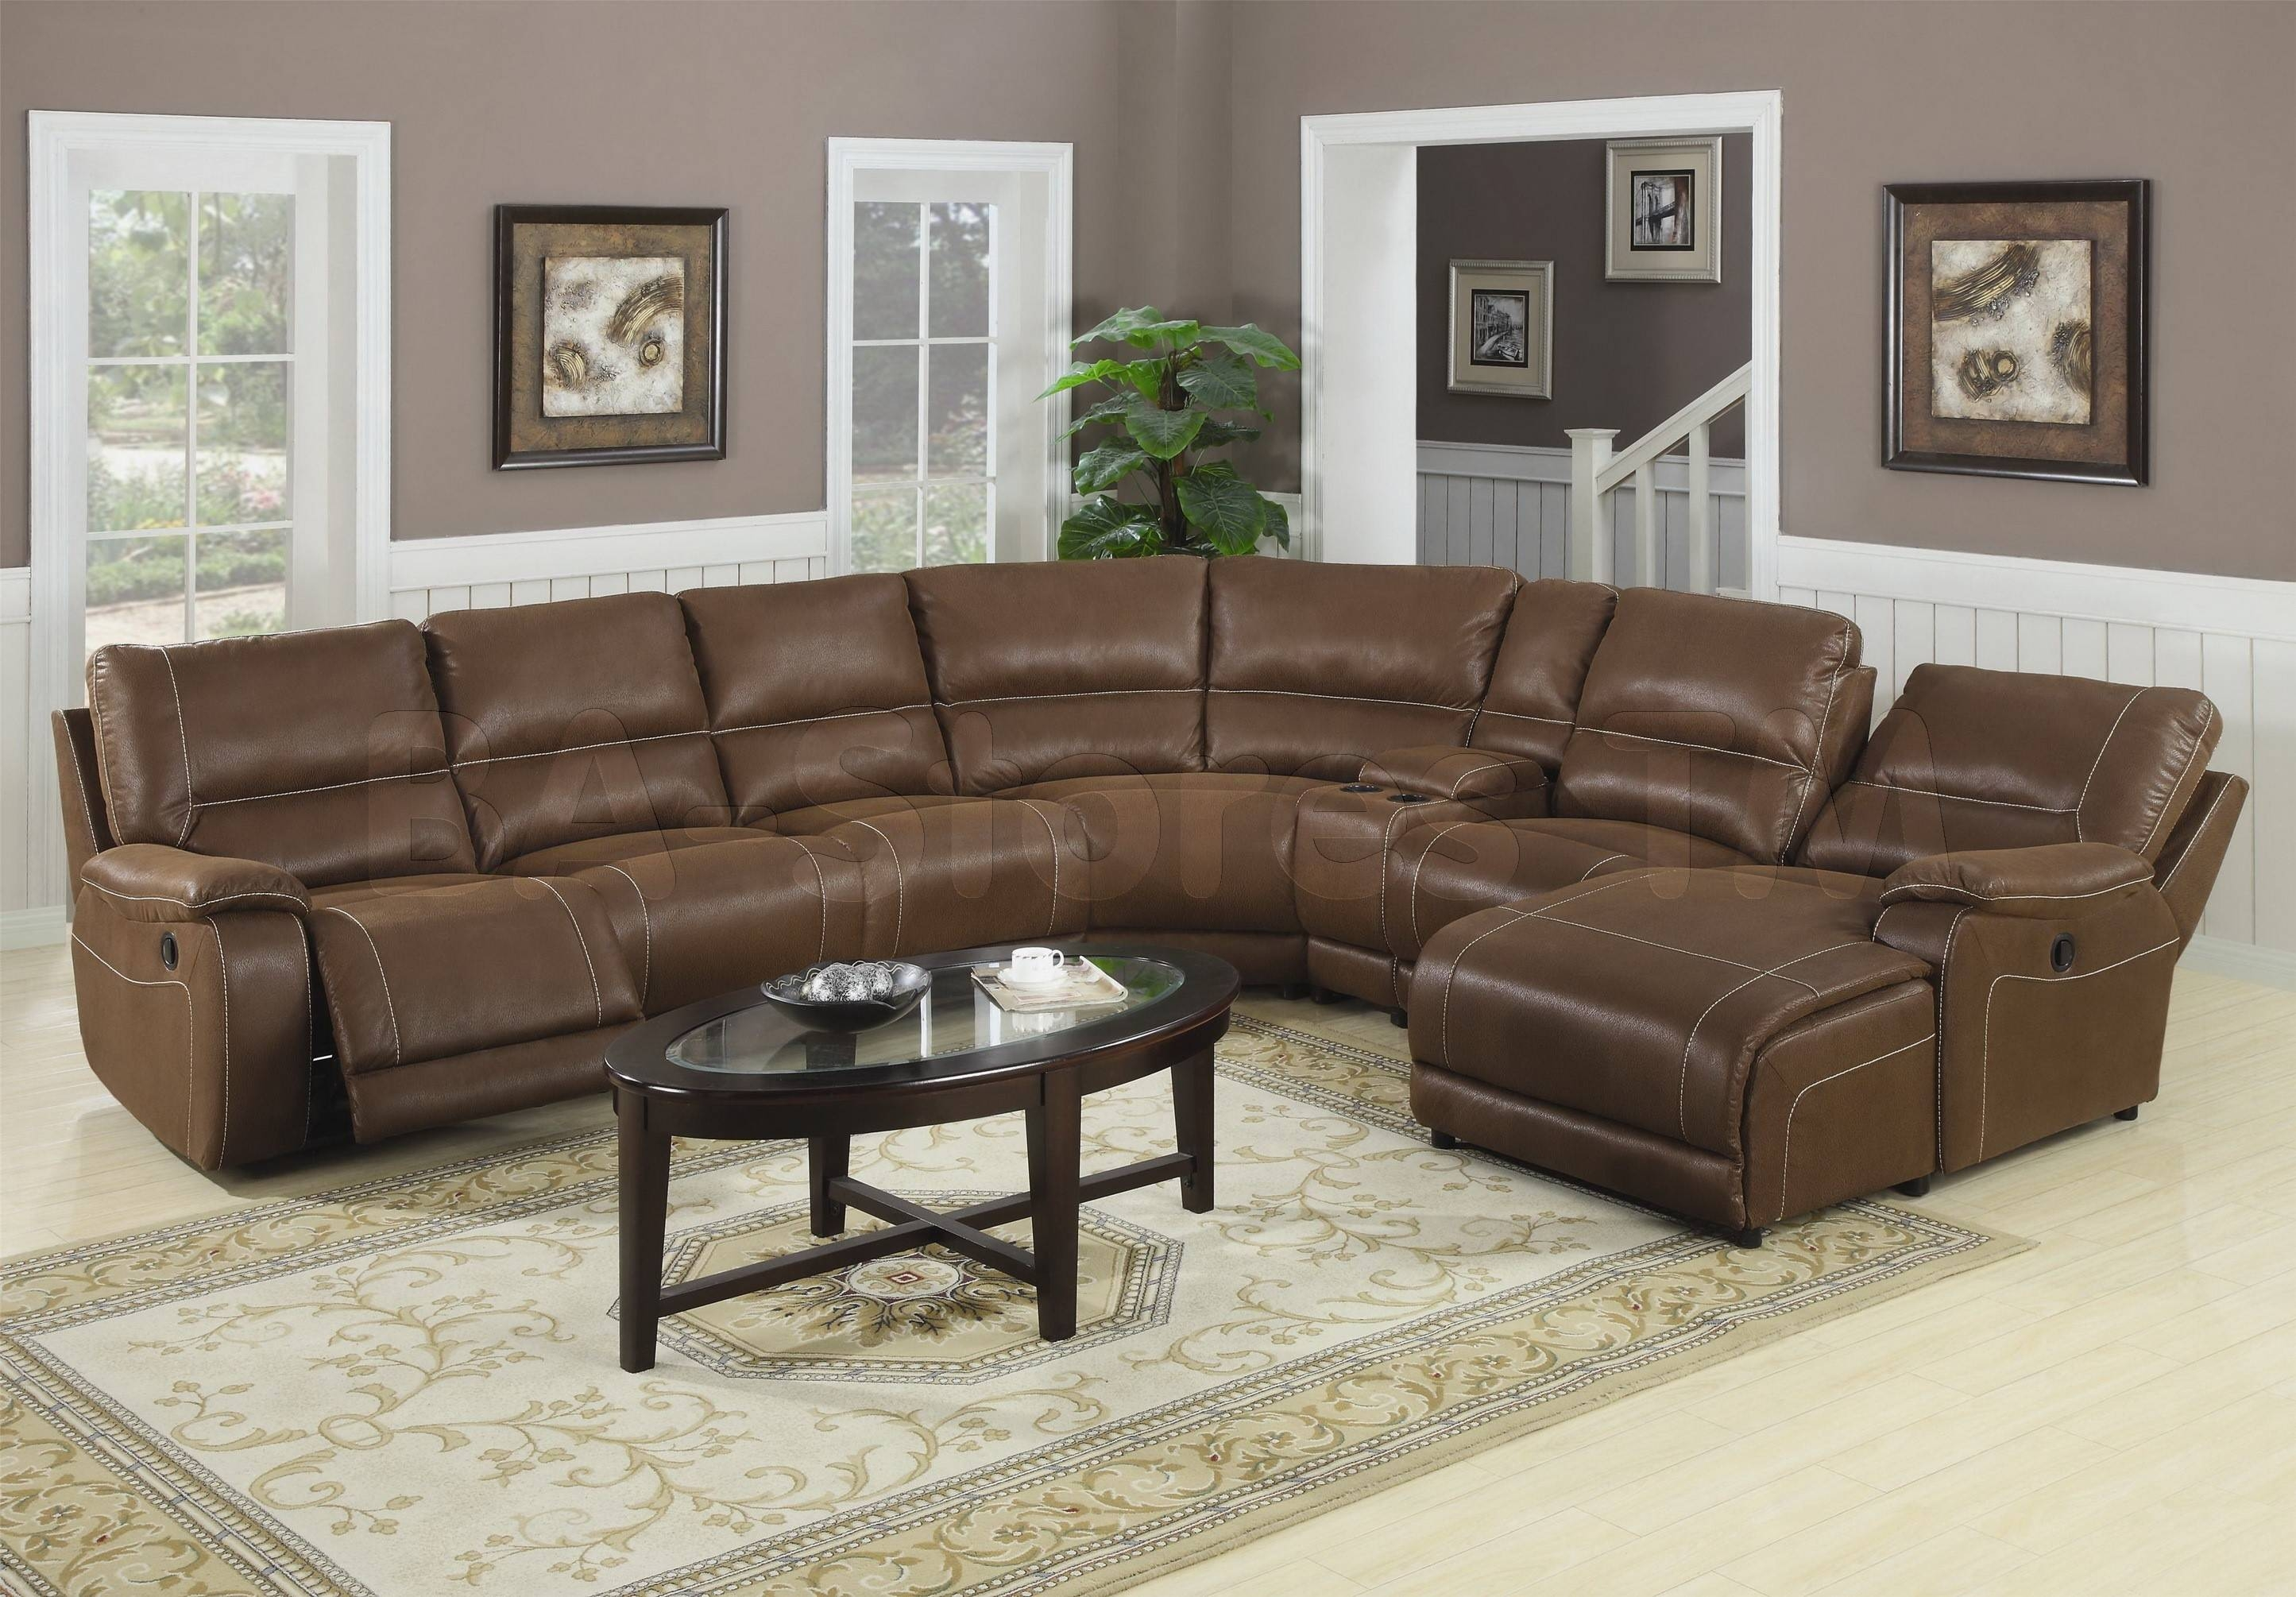 Brown Leather Reclining Sofa : Home And Garden Decor – Guide For Soft Sectional Sofas (View 5 of 30)